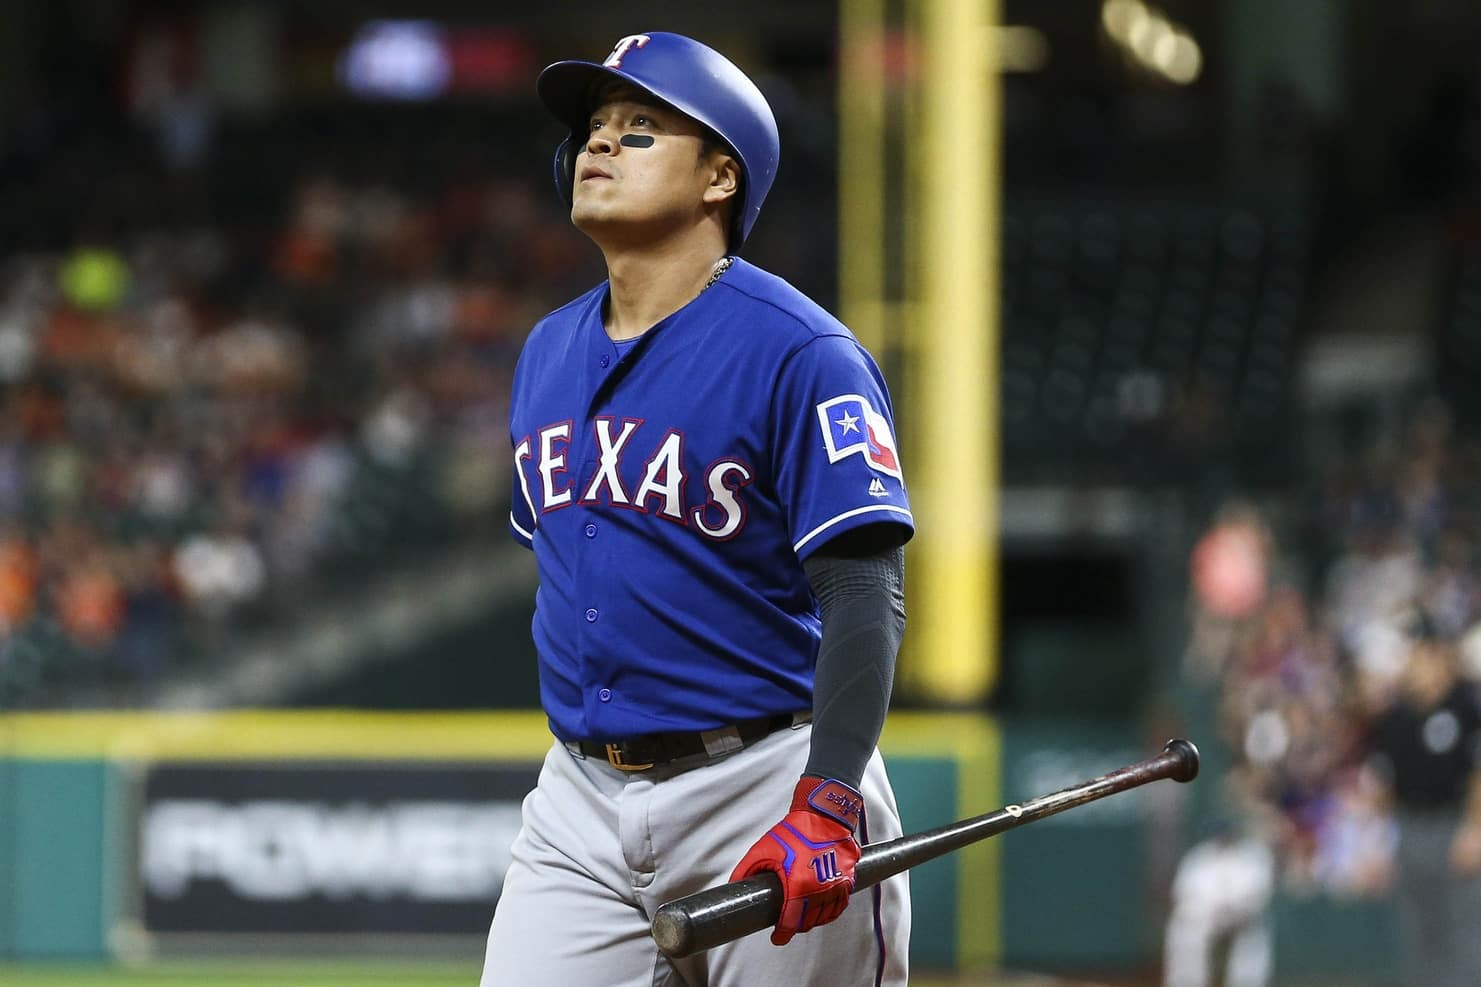 May 1, 2017; Houston, TX, USA; Texas Rangers designated hitter Shin-Soo Choo (17) reacts after striking out during the eighth inning against the Houston Astros at Minute Maid Park. Mandatory Credit: Troy Taormina-USA TODAY Sports